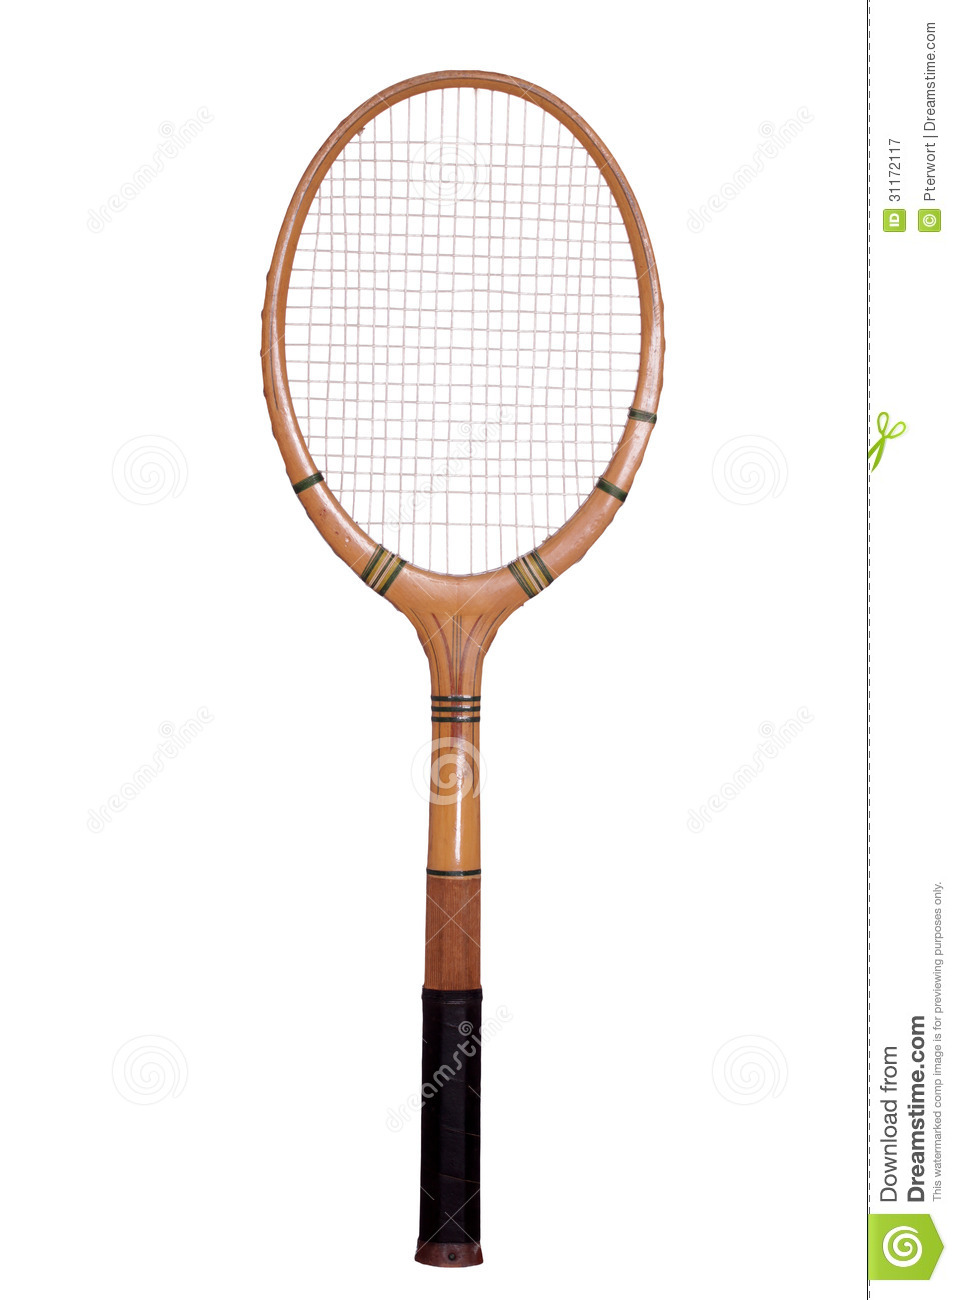 Old Tennis Racket Royalty Free Stock Photography - Image: 31172117